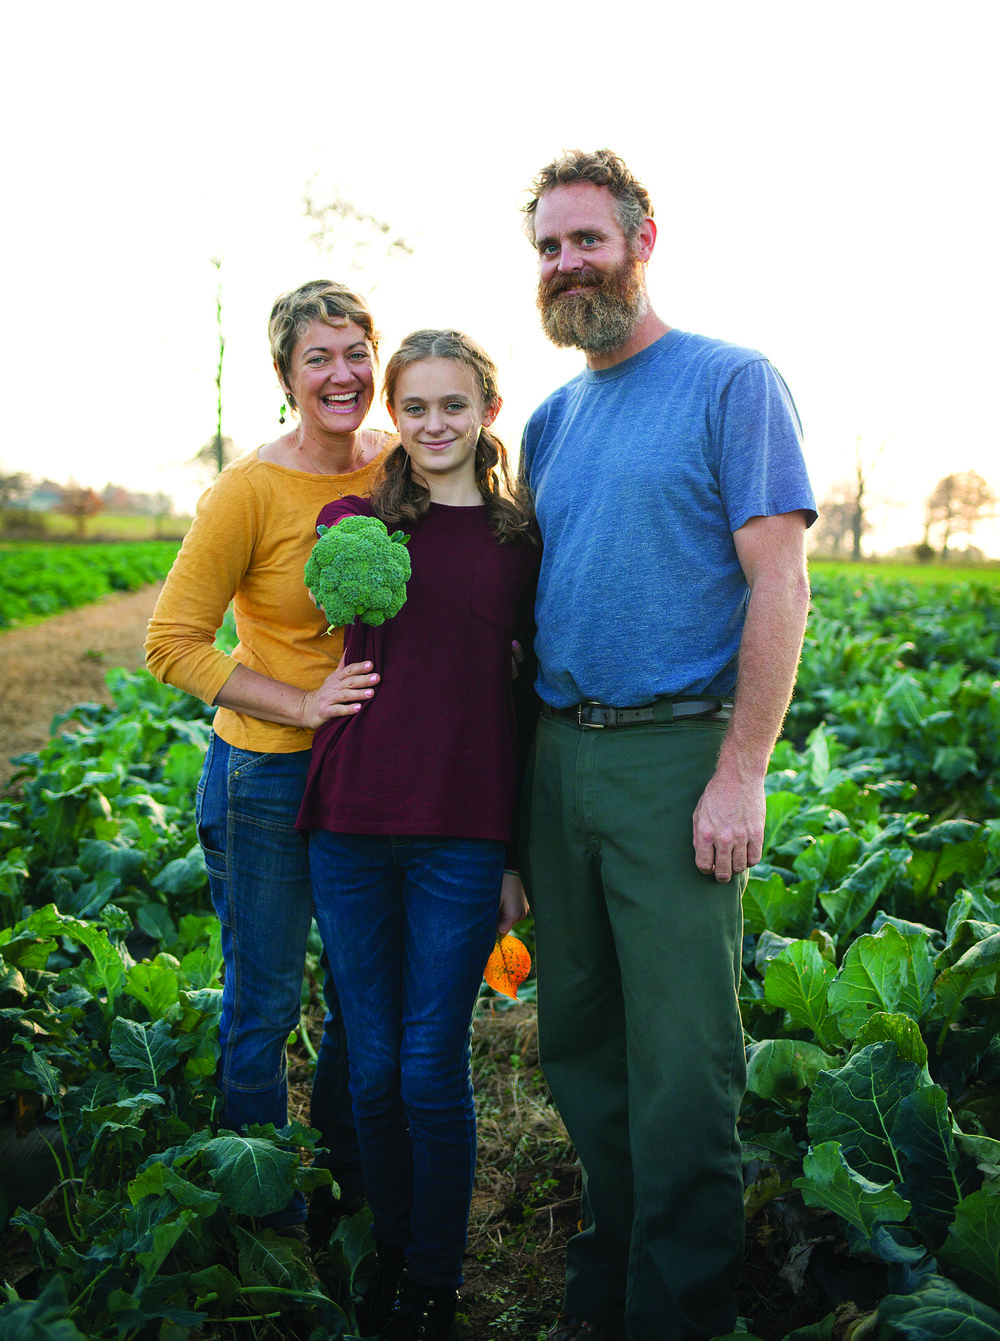 The Borneman family operates an organic farm in Bucks County. The wet weather in 2018 made a major impact on their bottom line, but they're optimistic for a good year ahead.